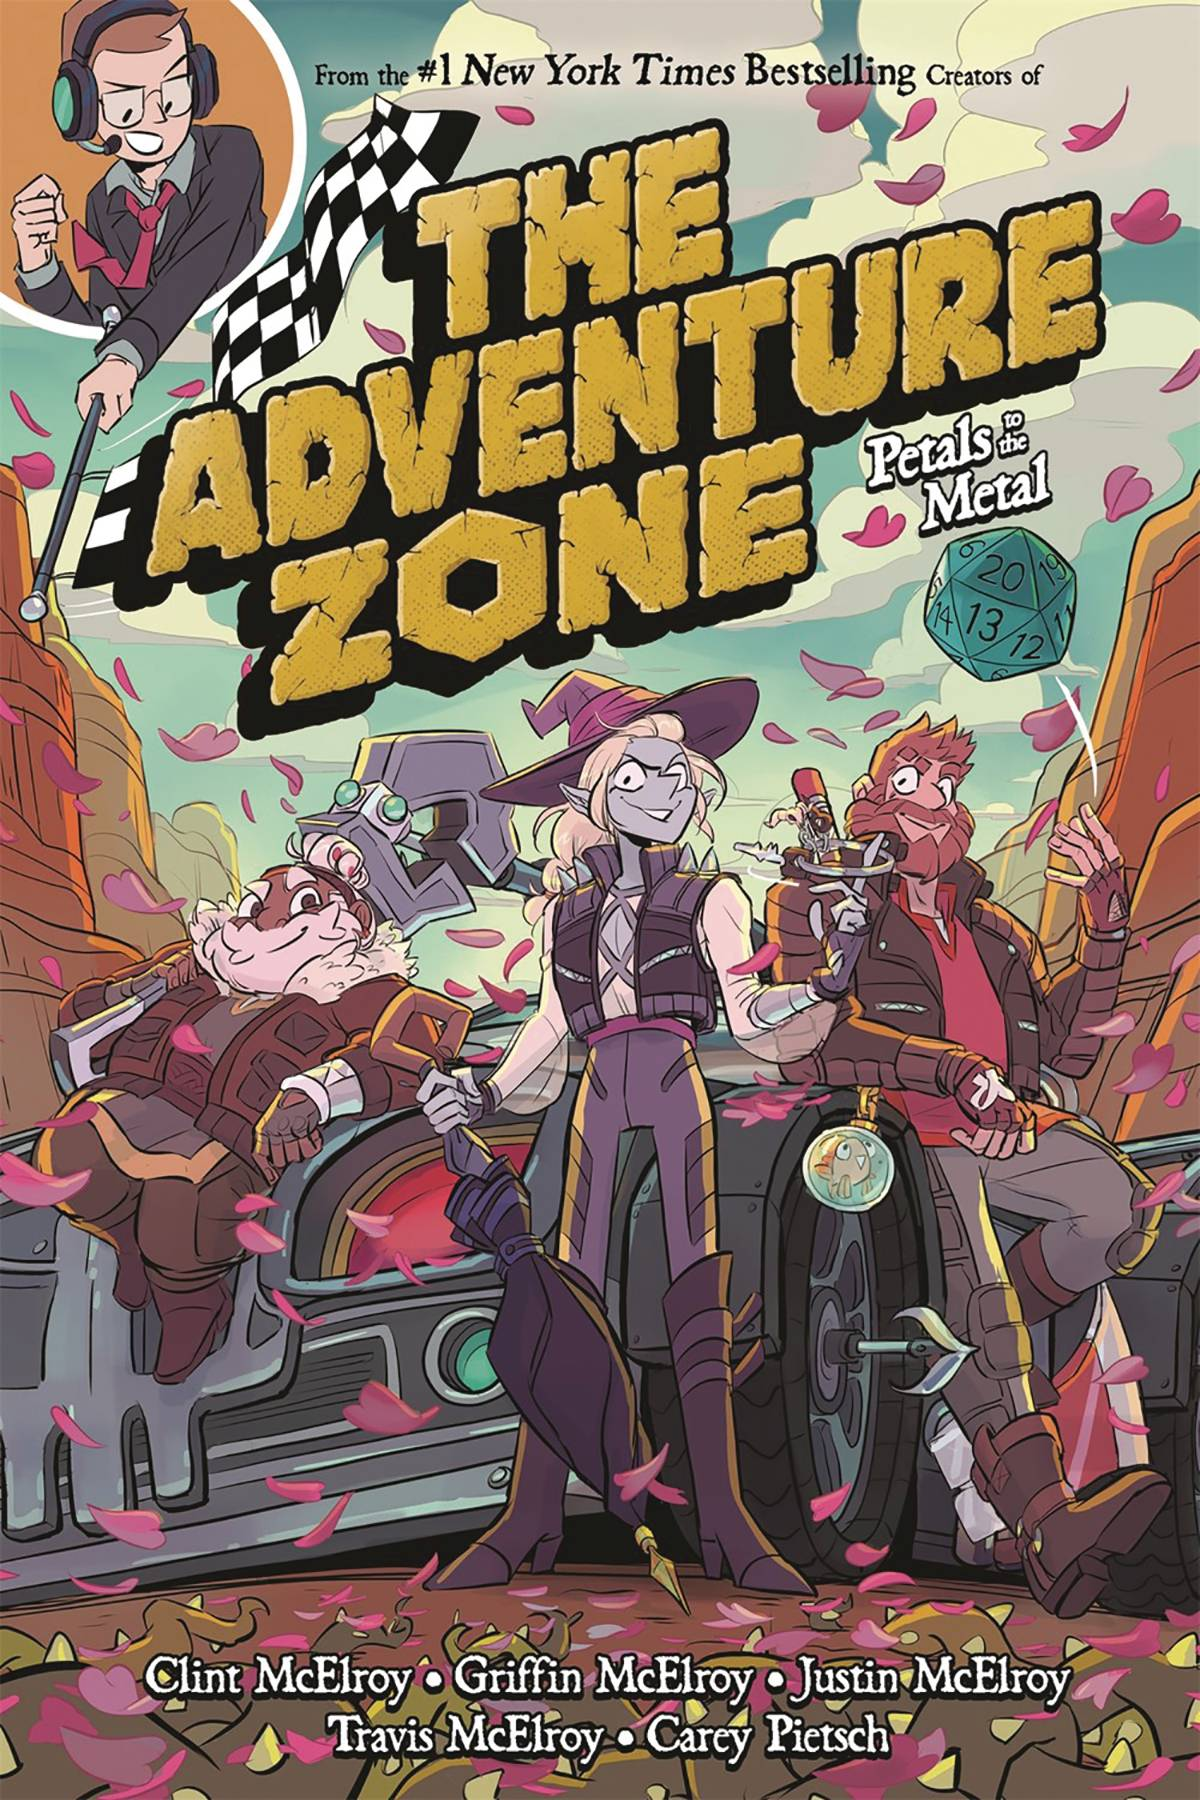 ADVENTURE ZONE GN VOL 03 PETALS TO METAL | Phoenix Comics and Games